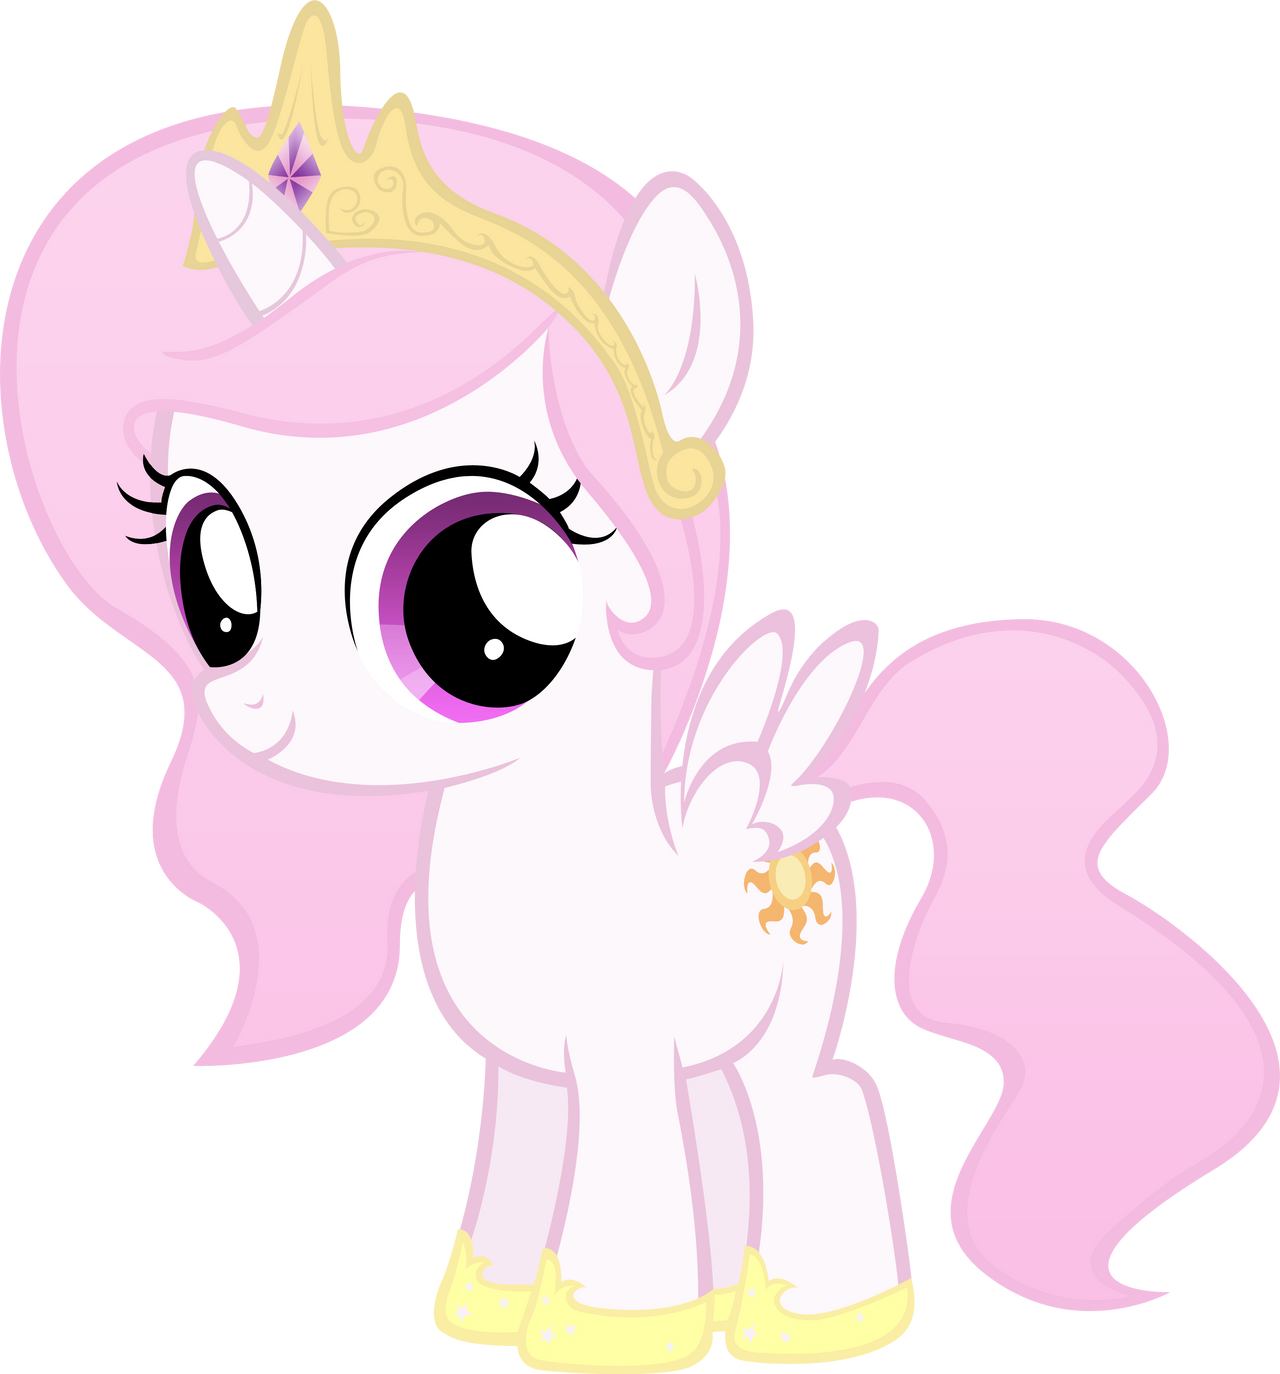 Celestia Filly Except Pink By MoongazePonies On DeviantArt